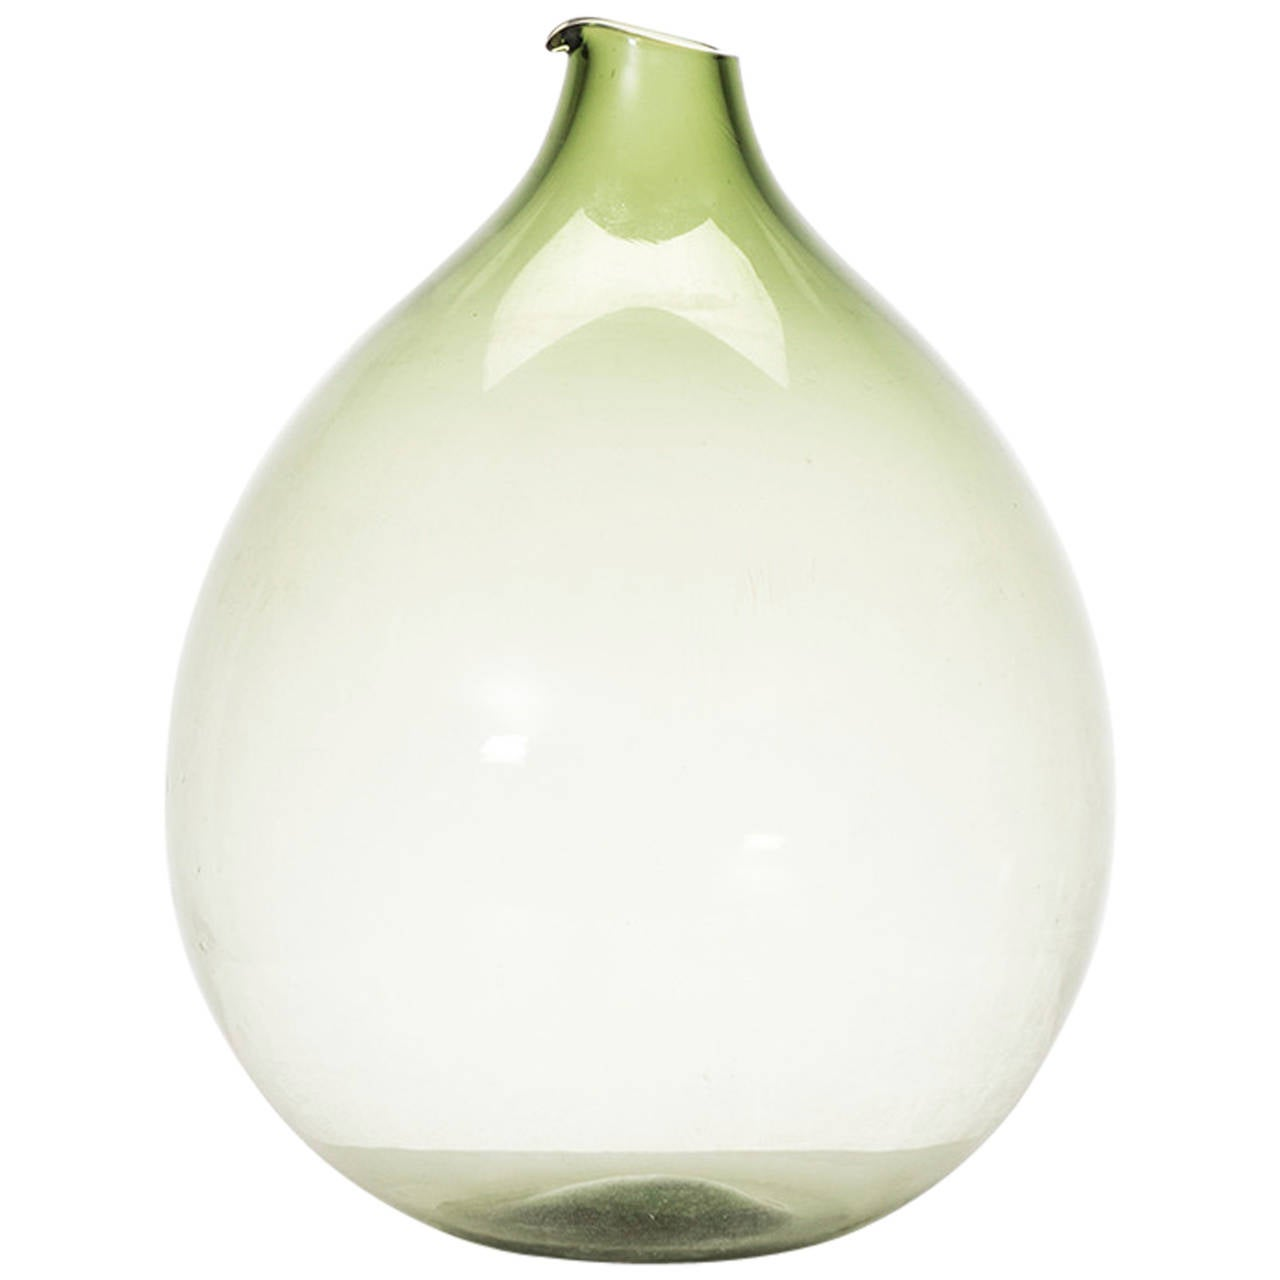 Kjell Blomberg Glass Vase by Gullaskruf in Sweden